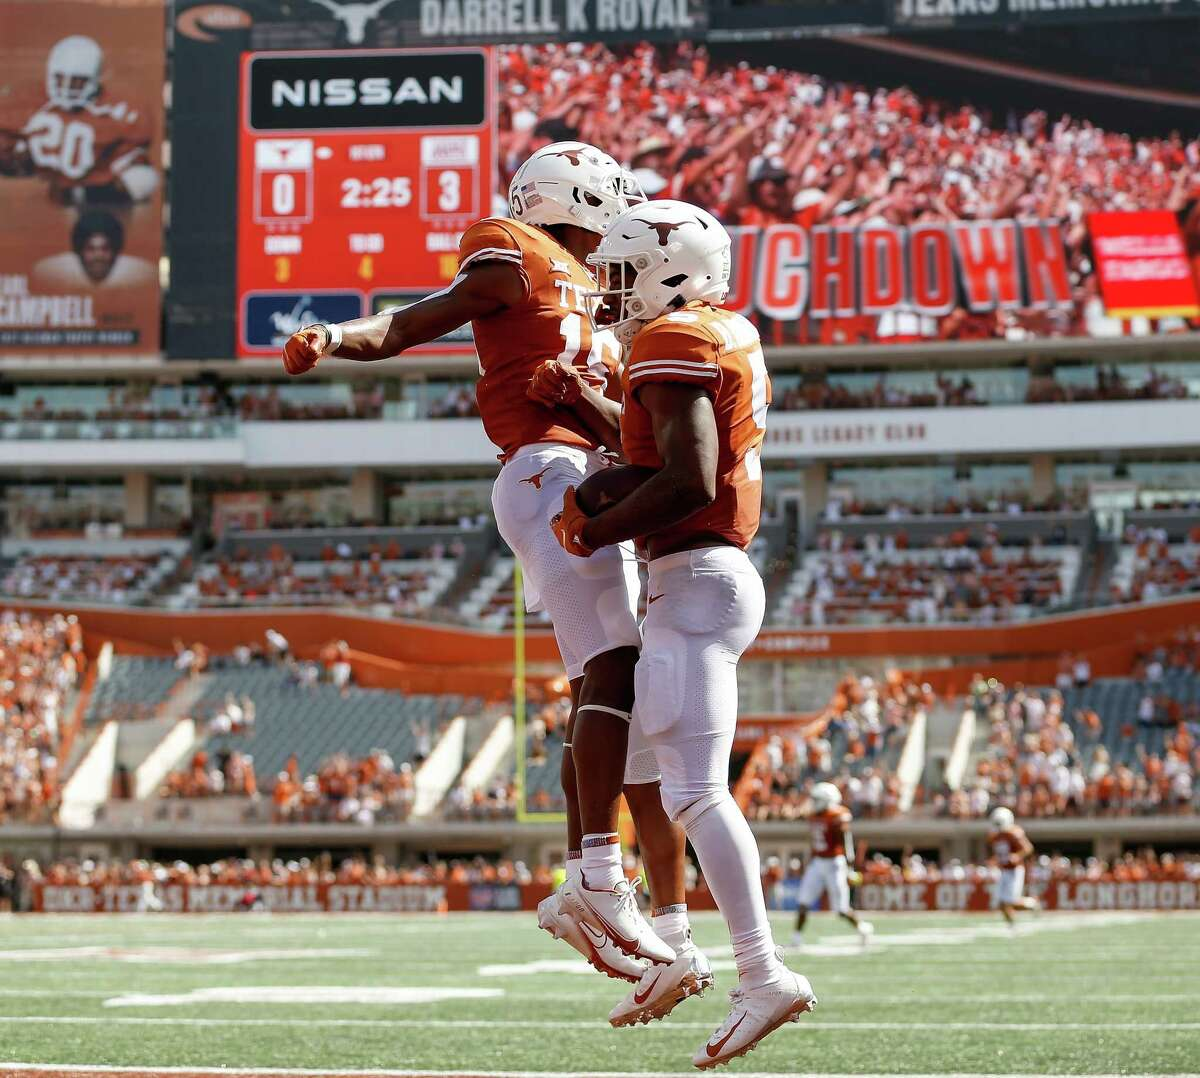 AUSTIN, TEXAS - SEPTEMBER 04: Marcus Washington #15 of the Texas Longhorns celebrates with Bijan Robinson #5 after a touchdown in the first quarter against the Louisiana Ragin' Cajuns at Darrell K Royal-Texas Memorial Stadium on September 04, 2021 in Austin, Texas.